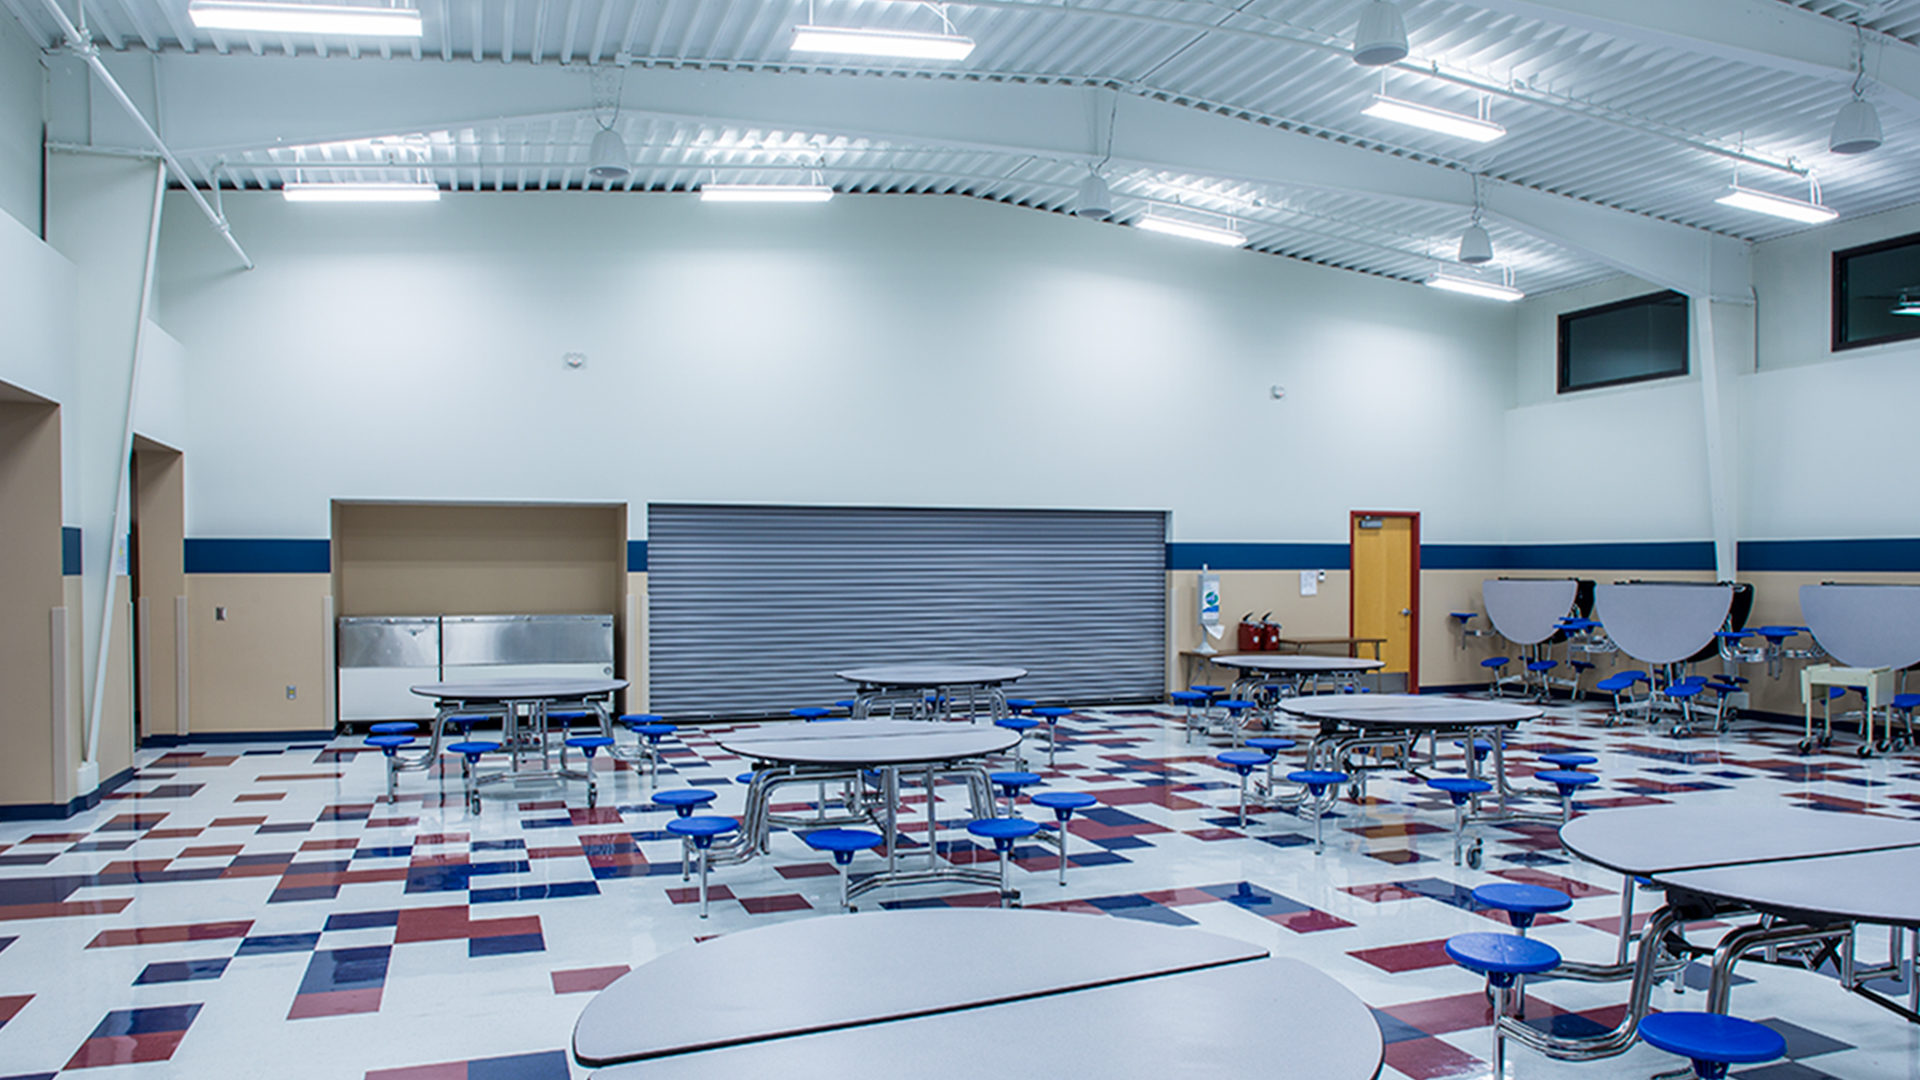 Lewis and Clark Elementary School Minot ND Interior Cafeteria